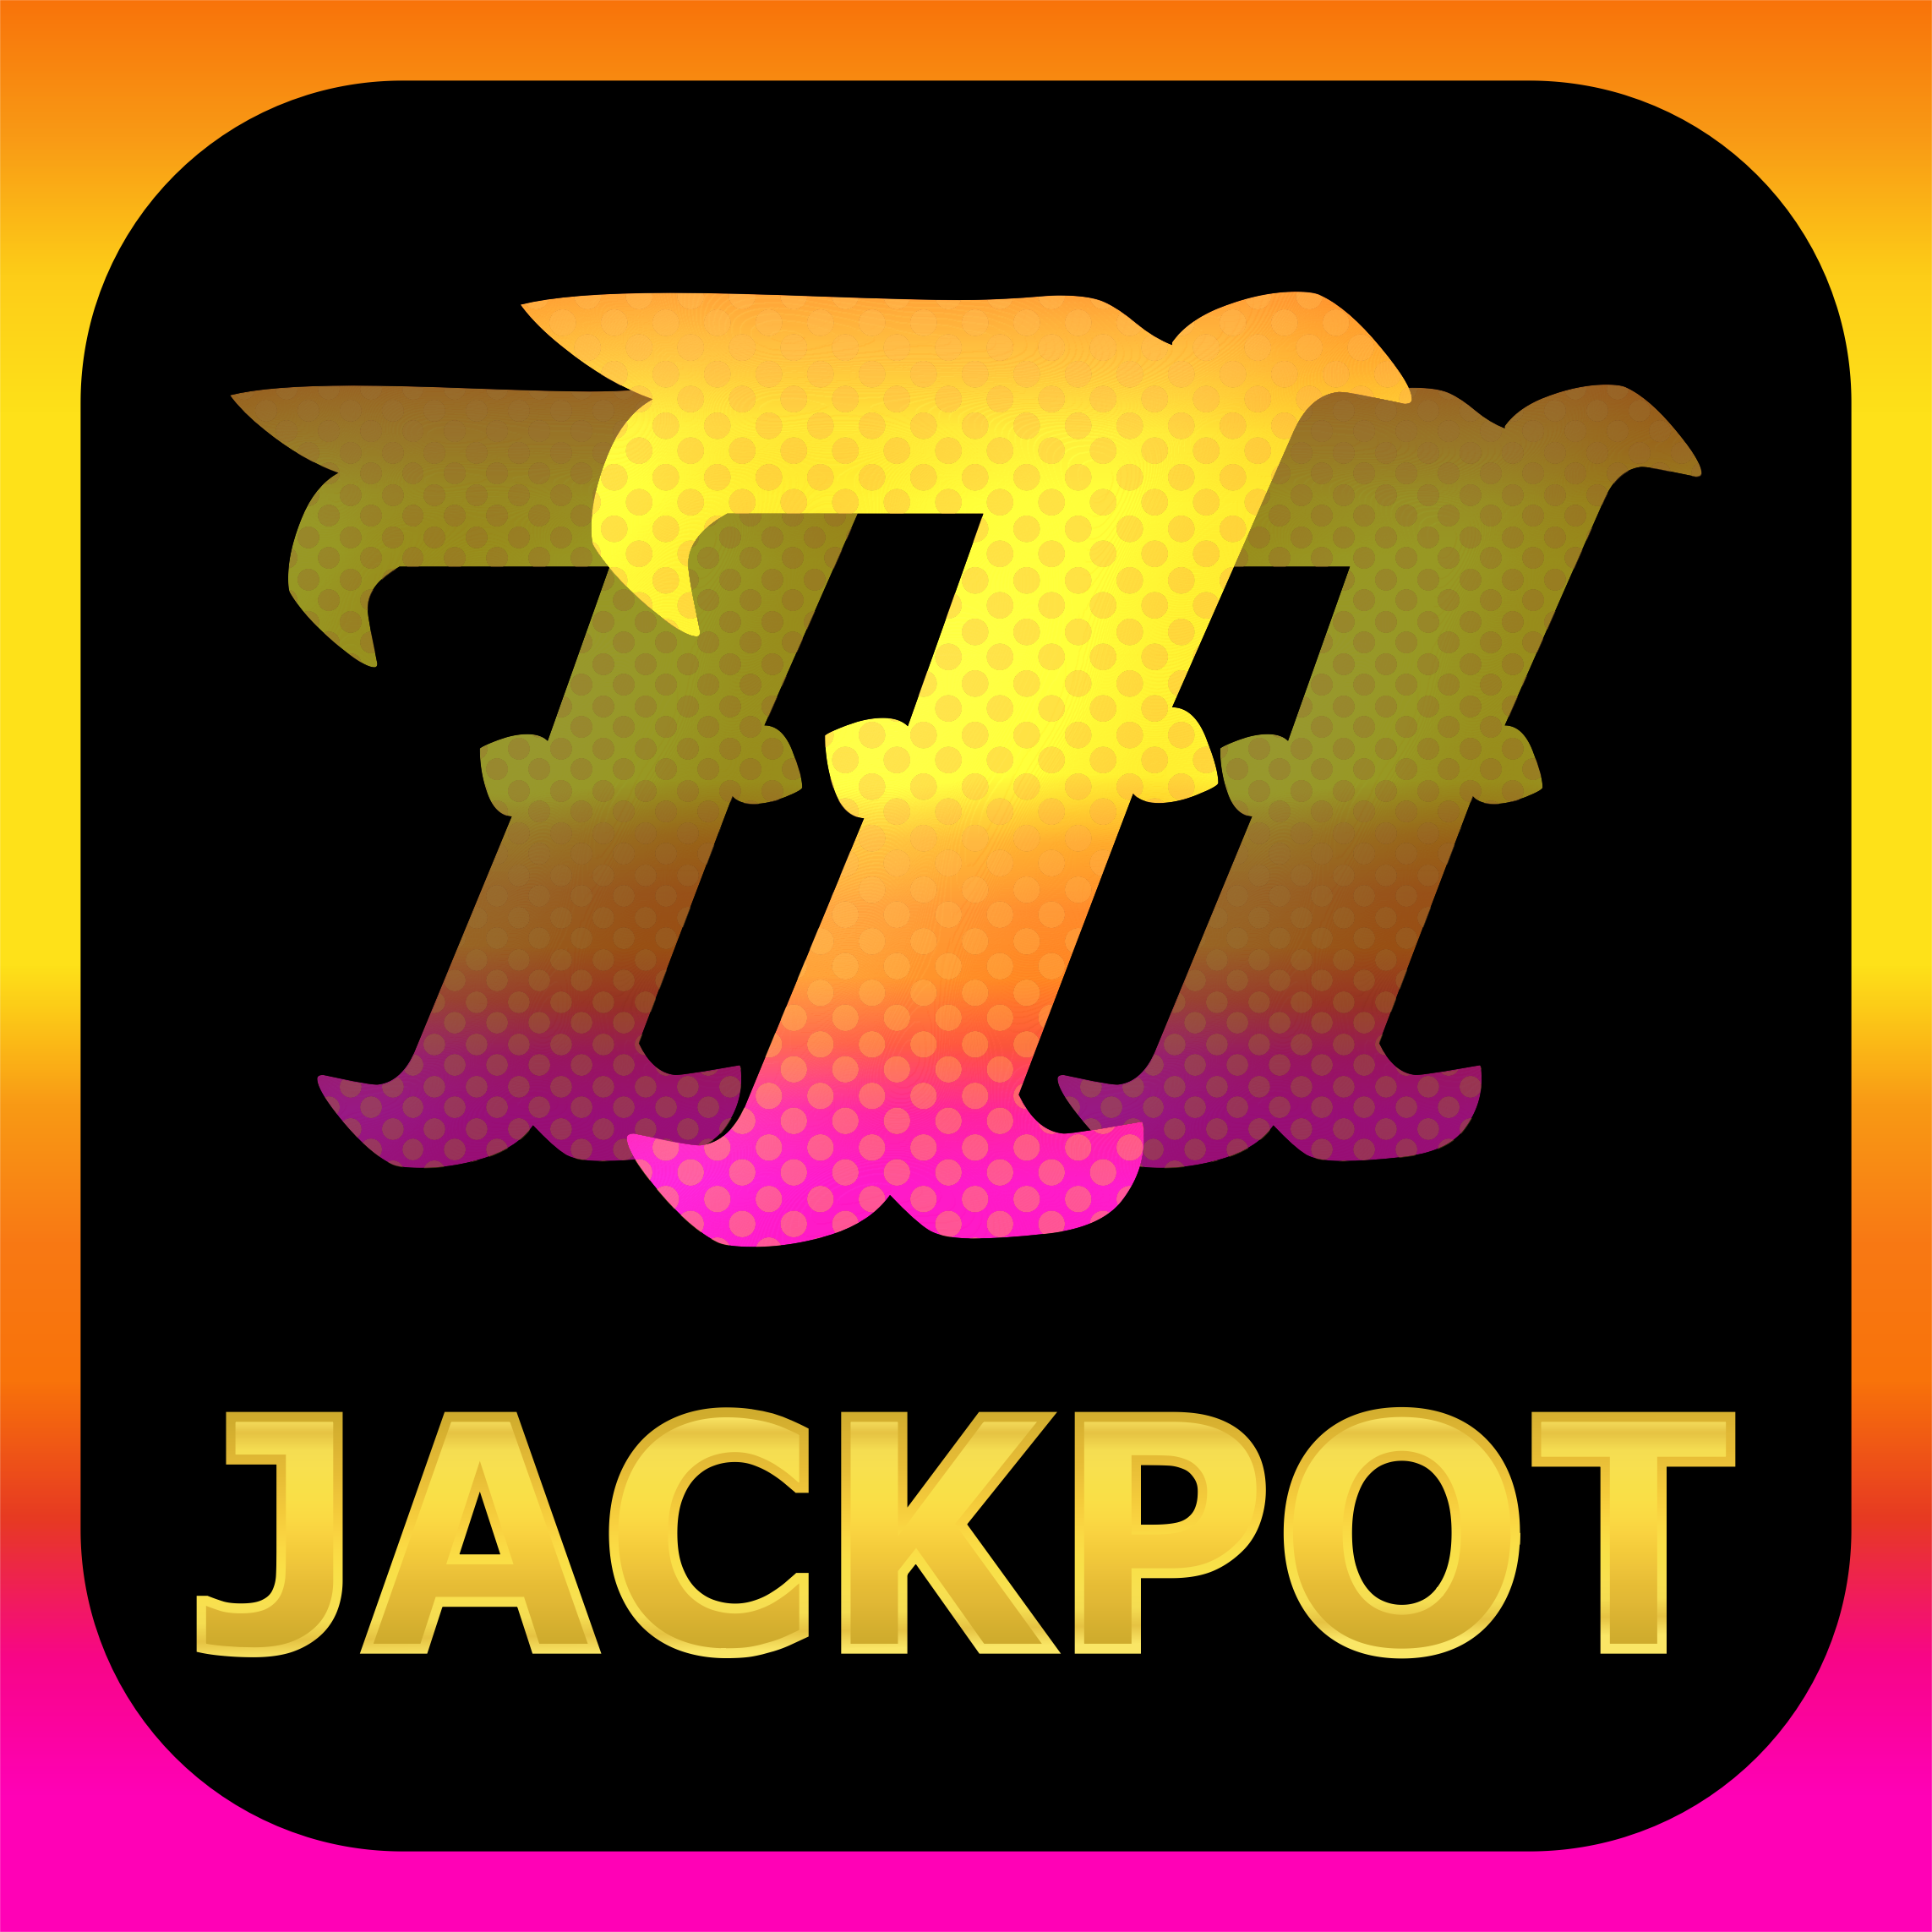 777 Jackpot (remix) by Arvin61r58